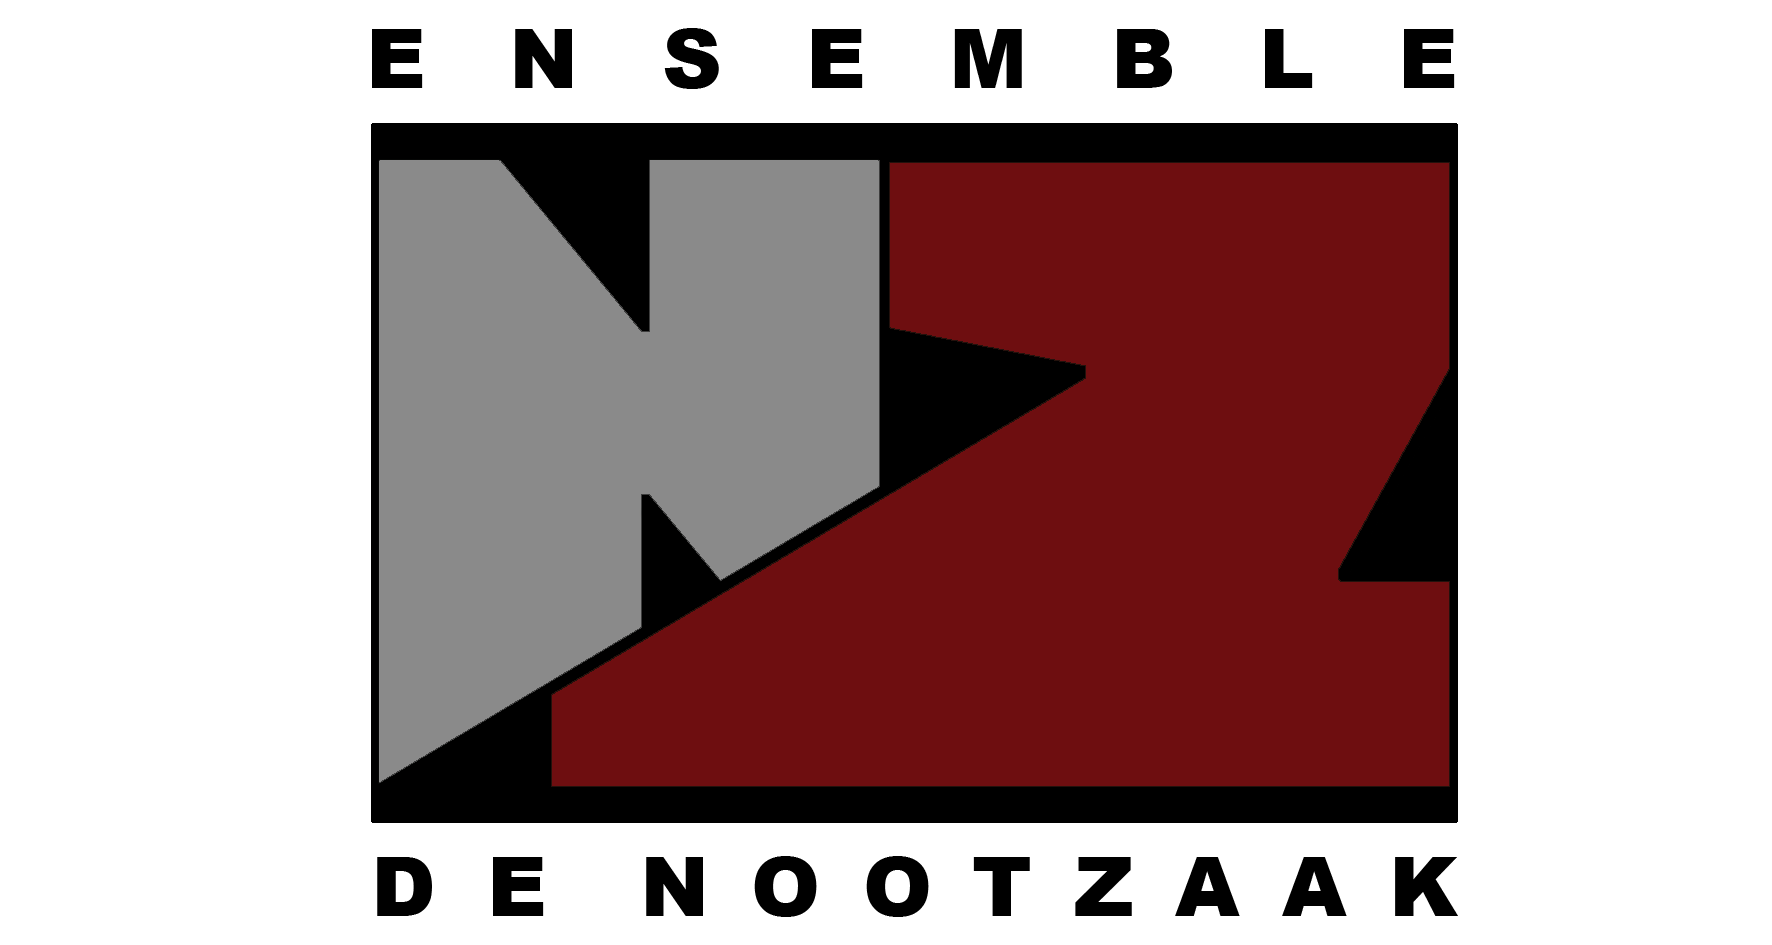 Ensemble De Nootzaak